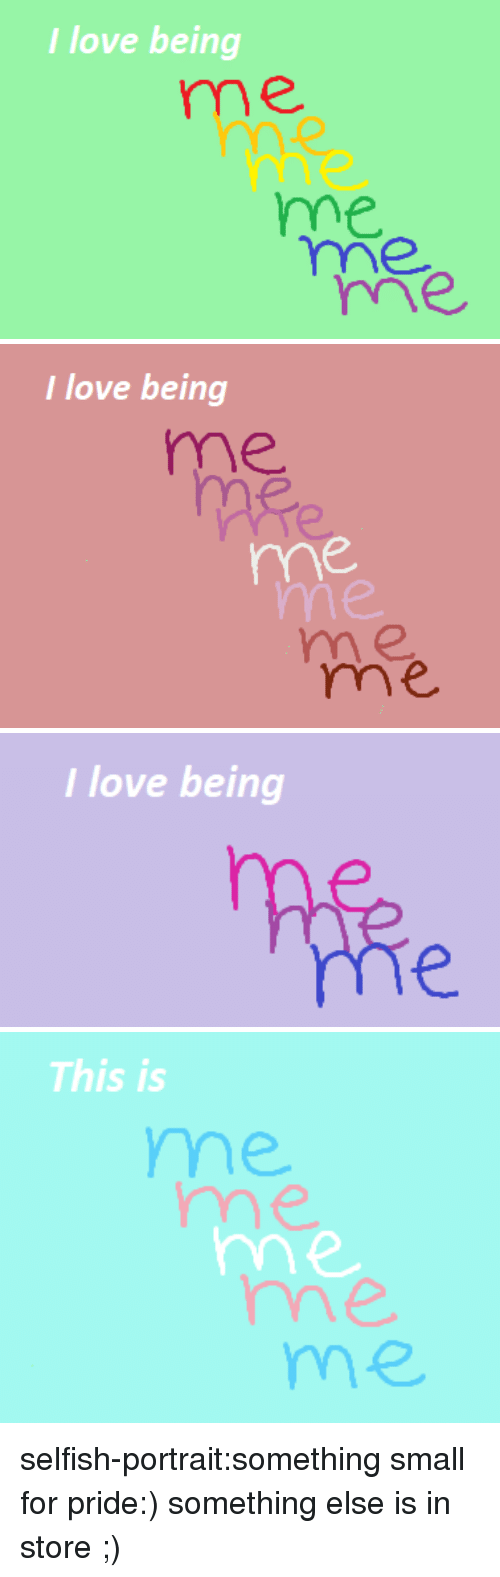 Love, Target, and Tumblr: I love being  me  me  me  rmme   I love being  me  me  m e  me   I love being   This is  me  me  me  me selfish-portrait:something small for pride:) something else is in store ;)